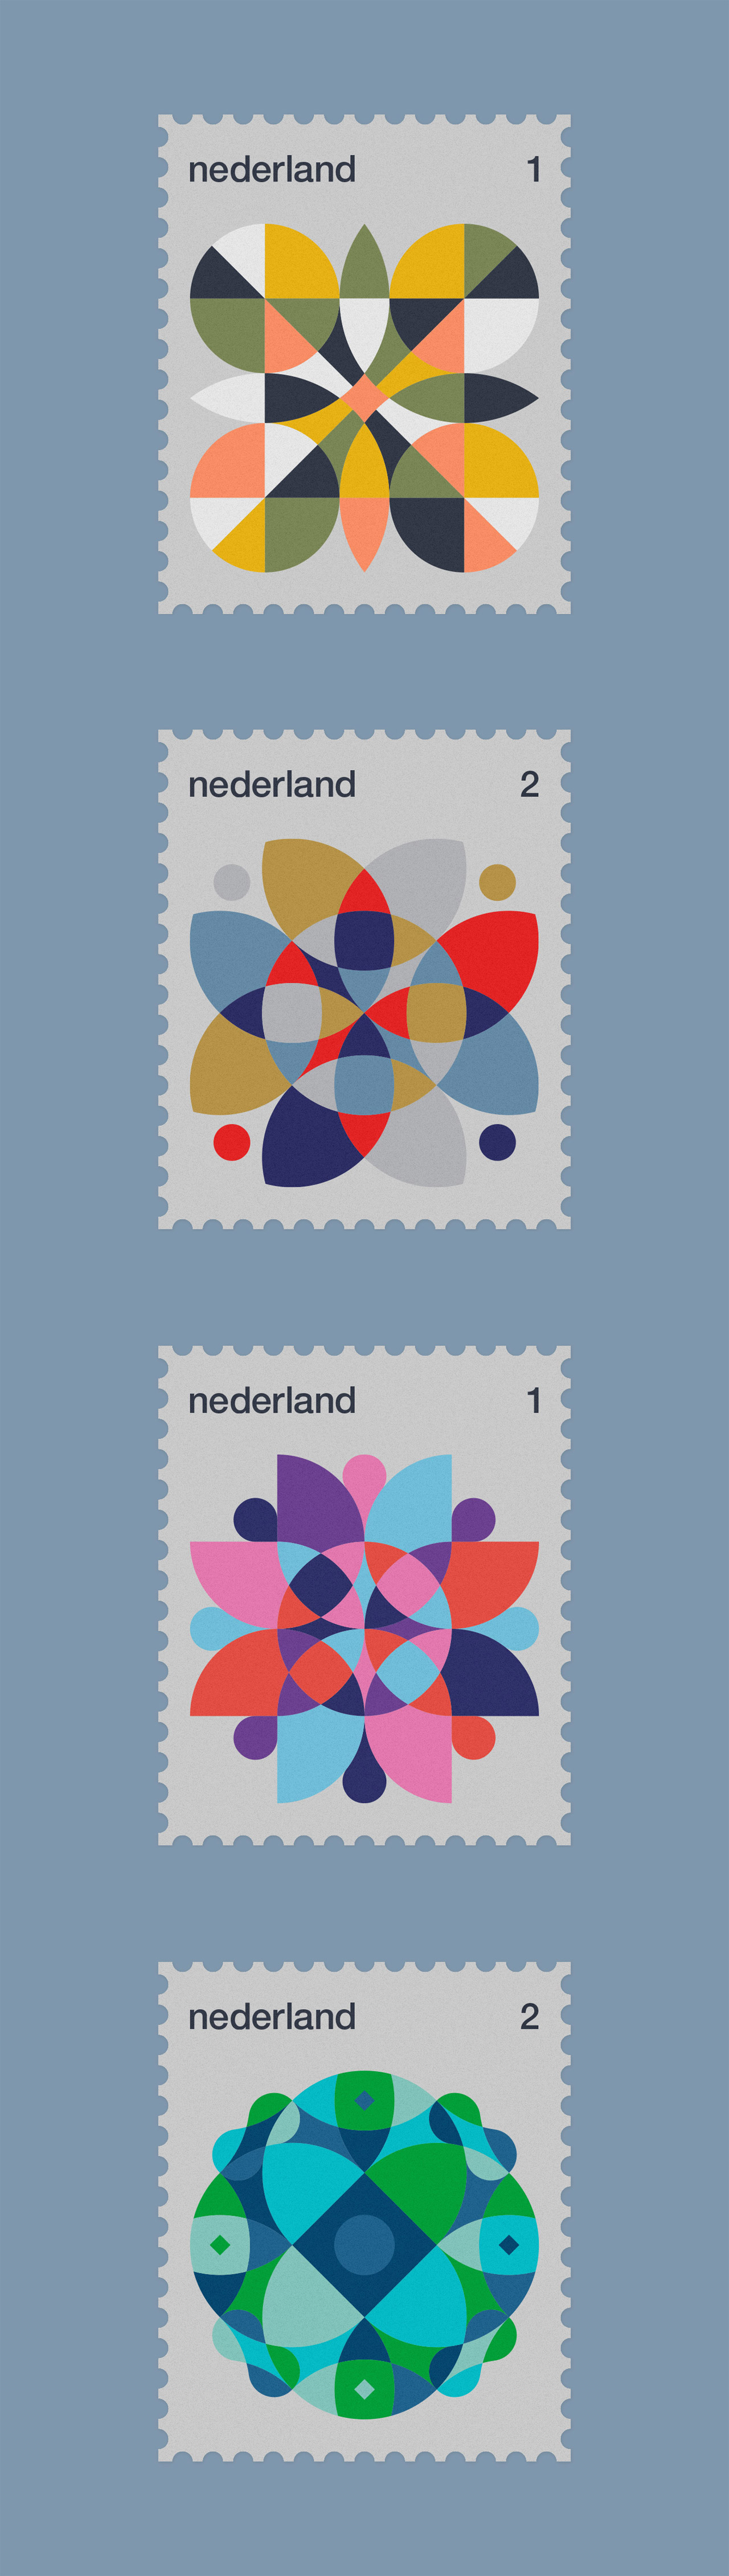 Dutch Stamps, a graphic design series by Rick Jordens.